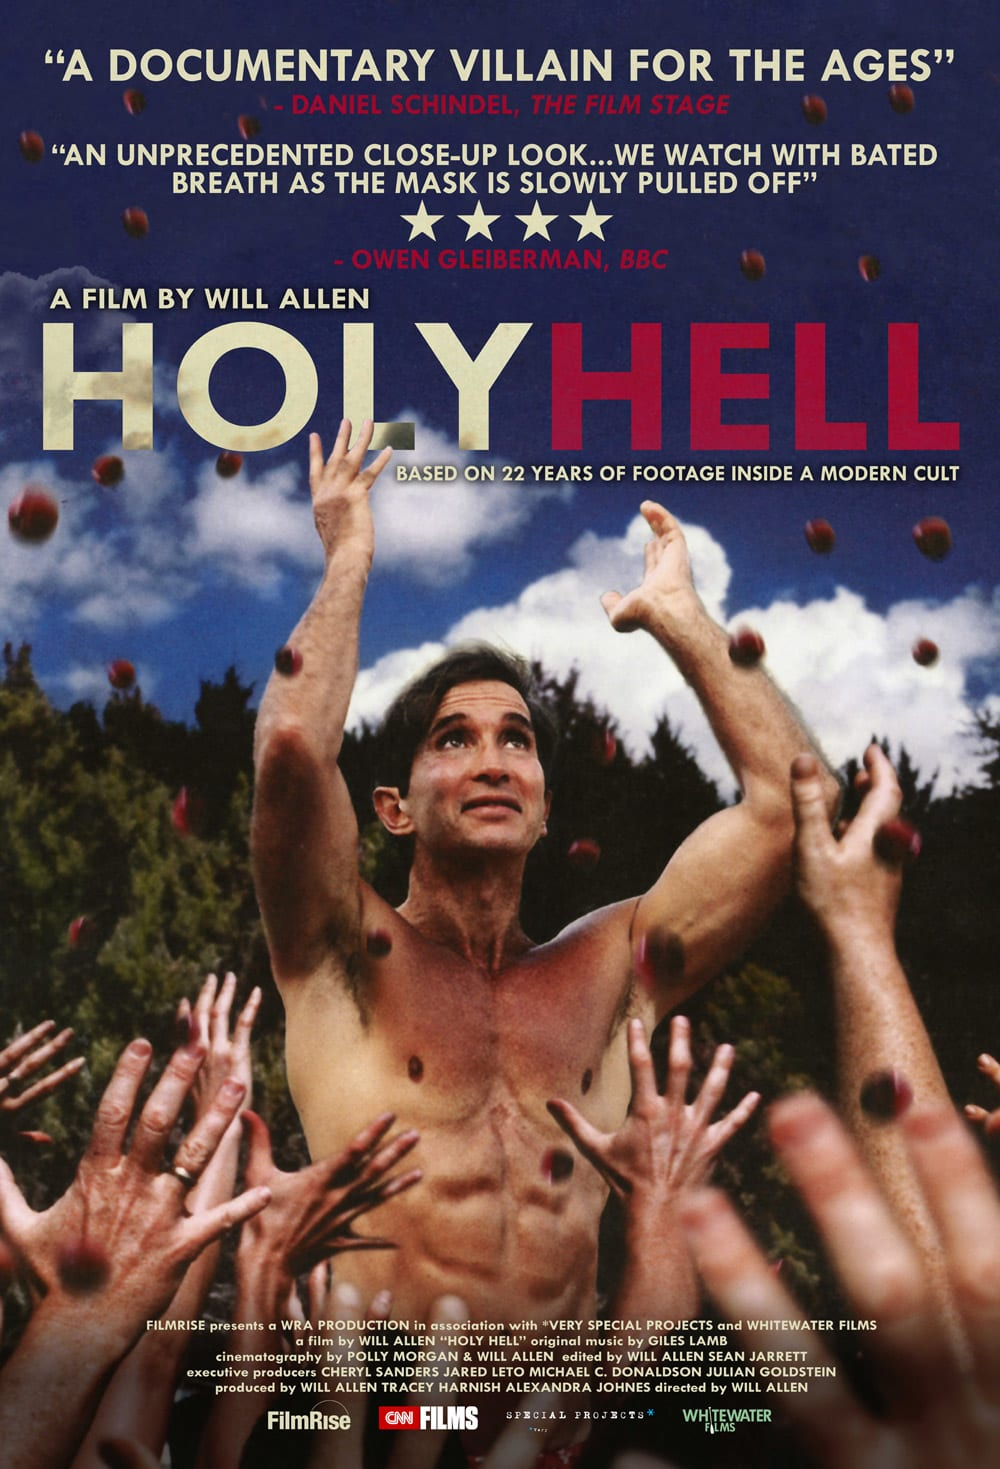 Holy Hell Documentary Shows How Cult Leader Raped Followers